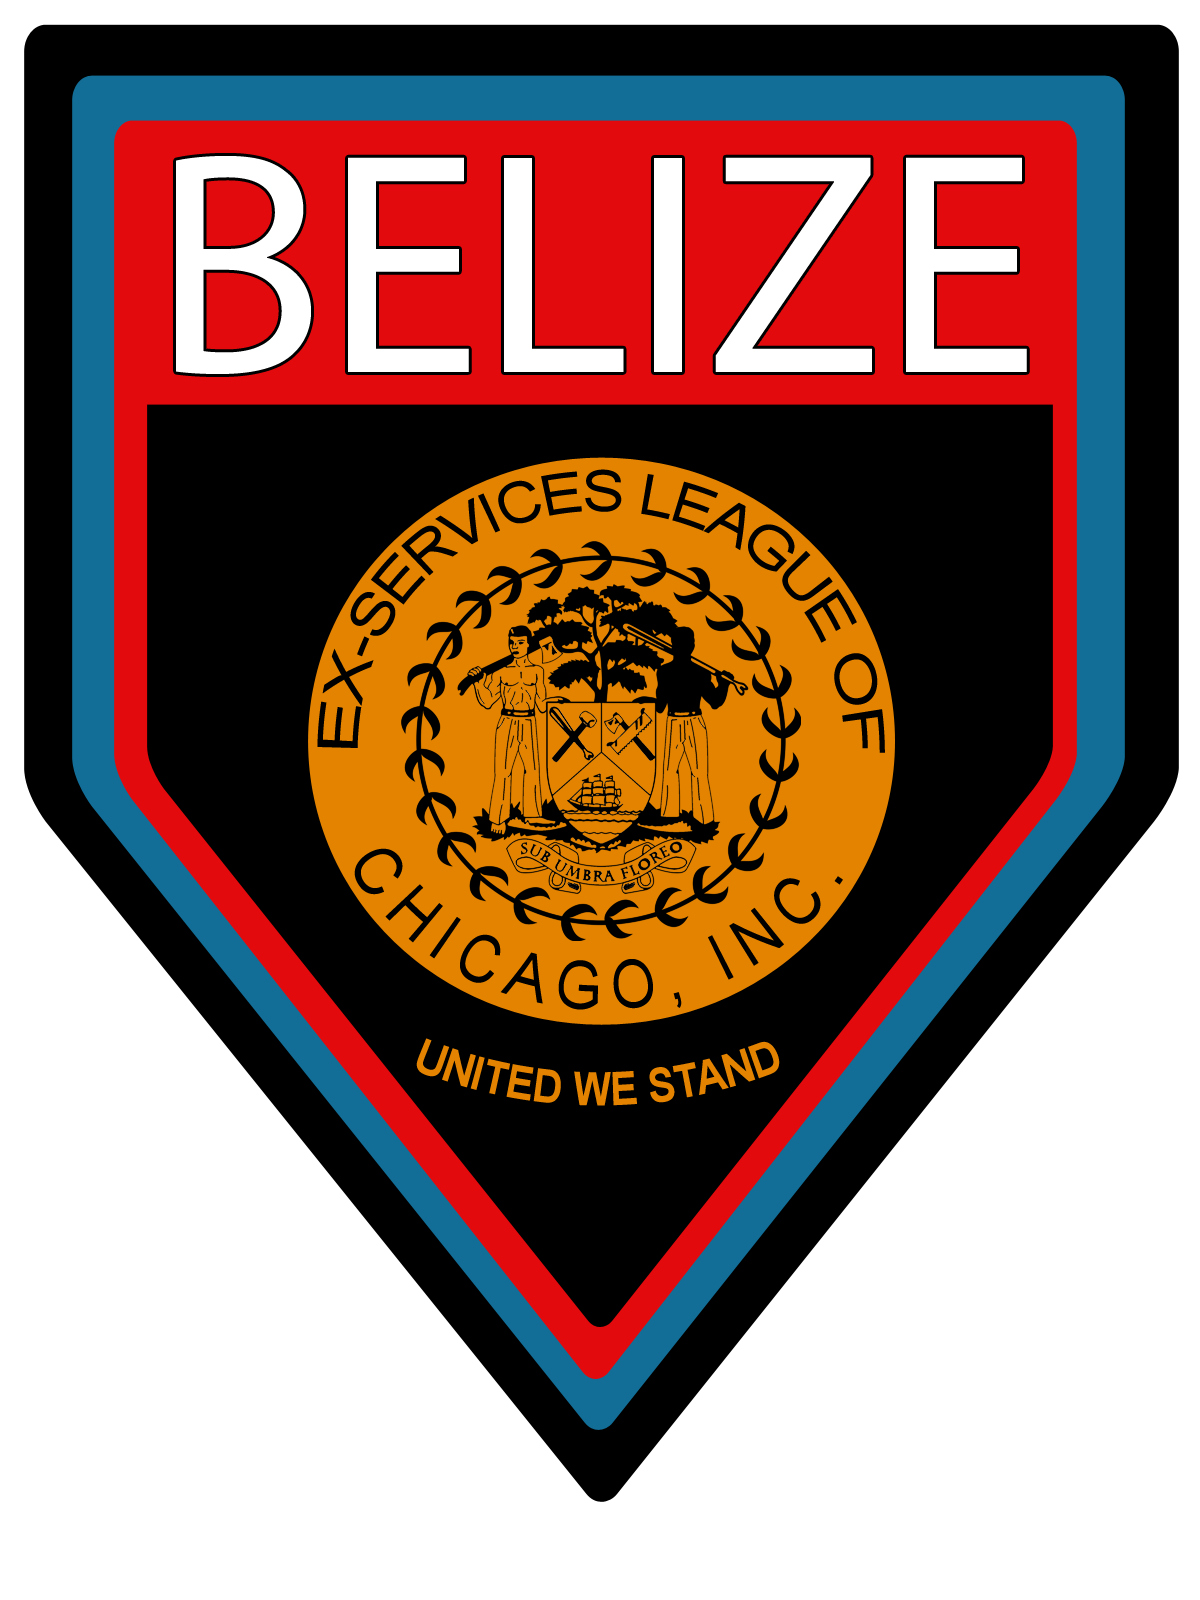 Belize Ex-Services League of Chicago, Inc.